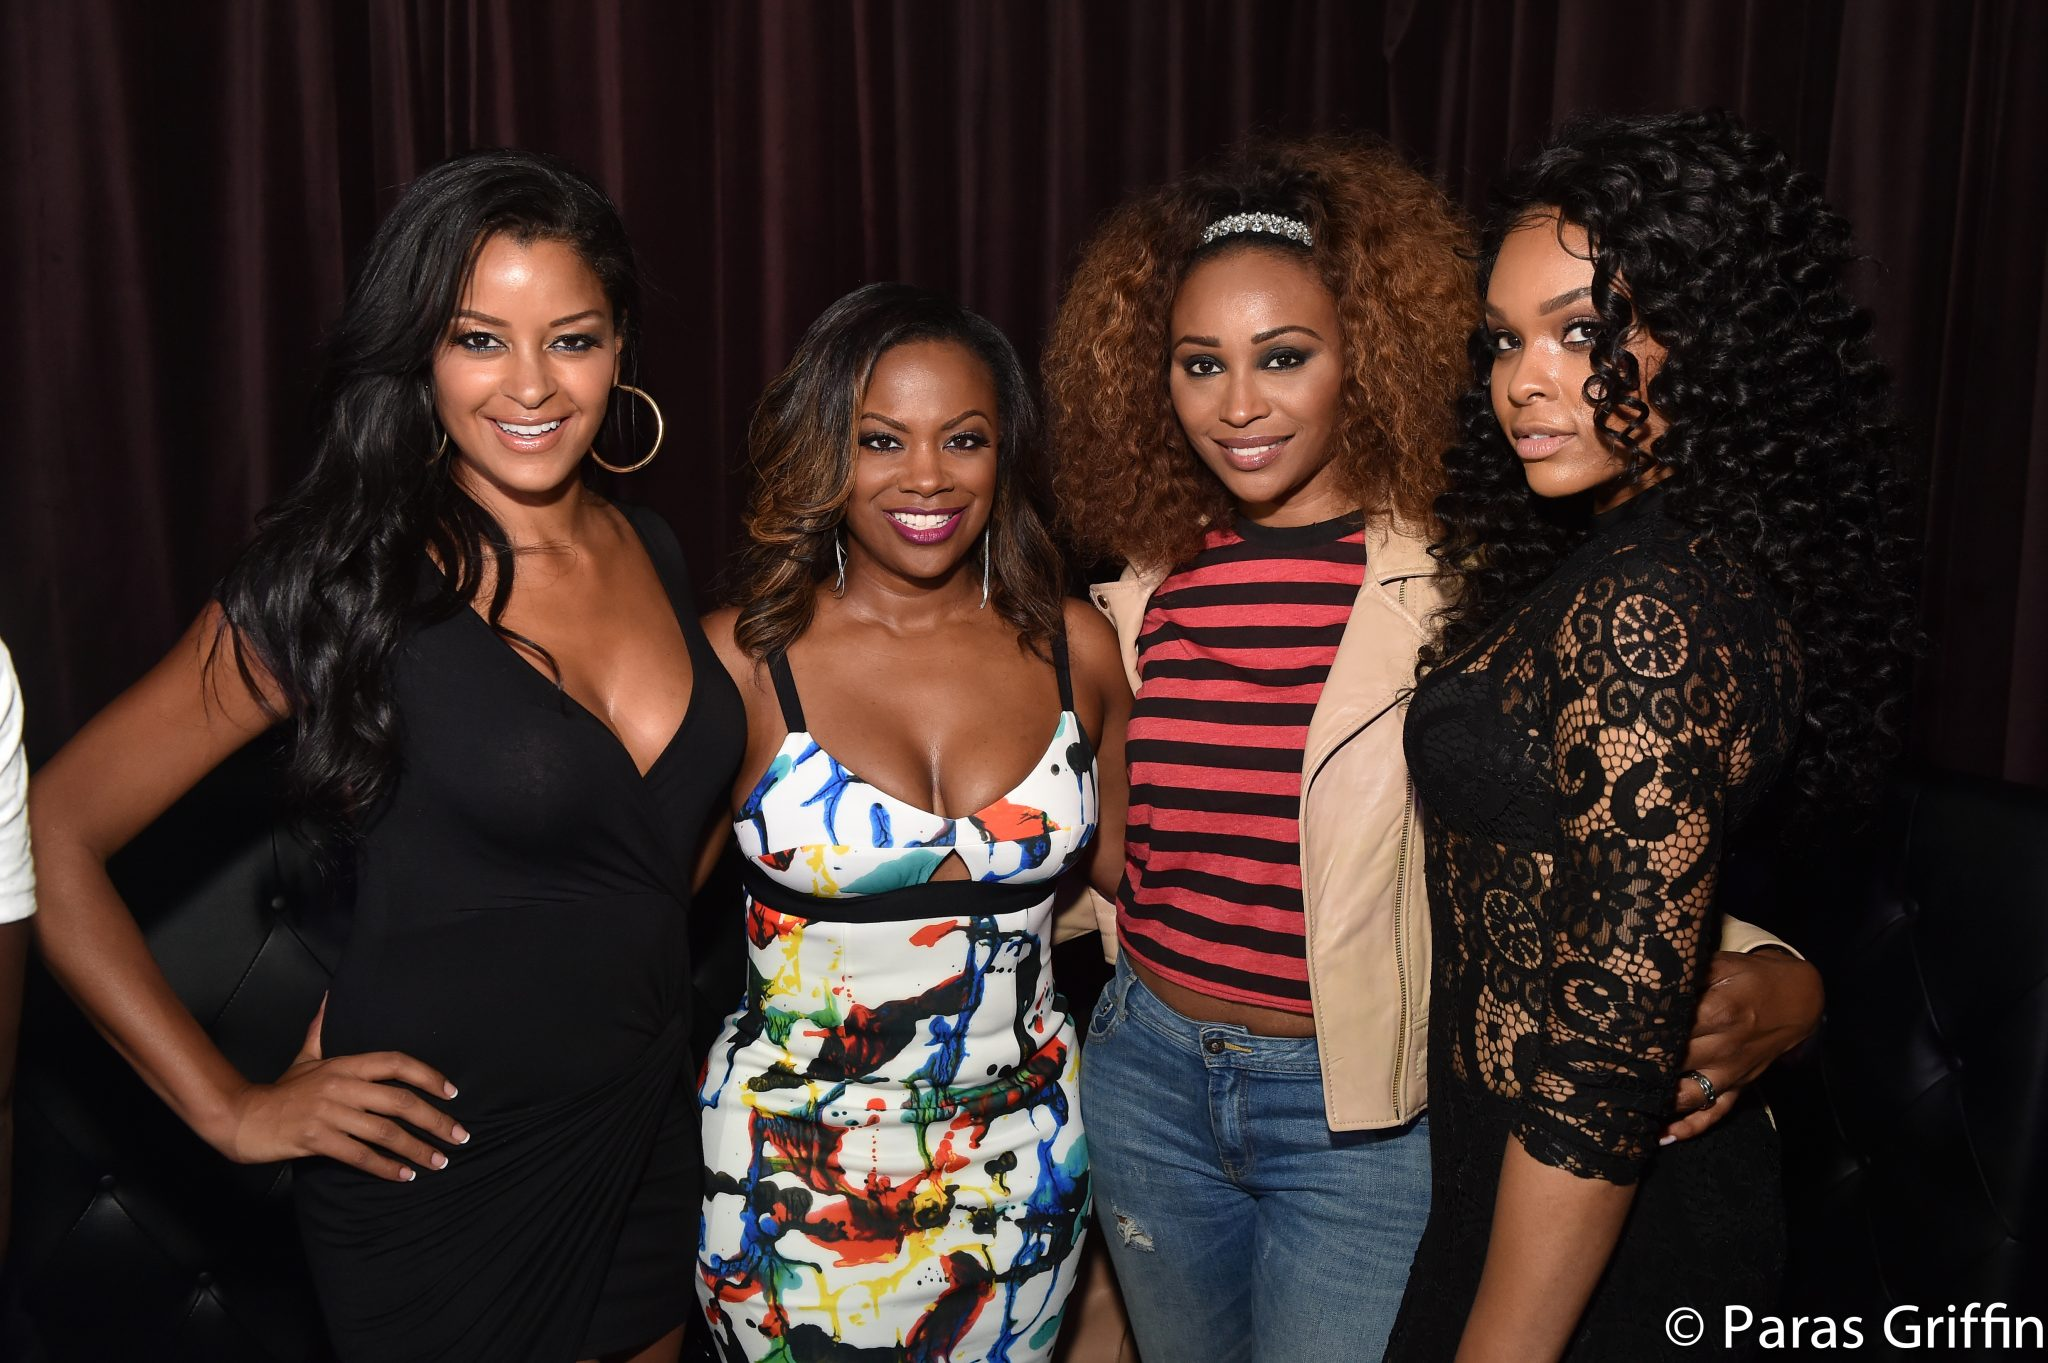 Kandi Burruss's Private Viewing Party For Her Spin-Off Show 'Kandi's Ski Trip'